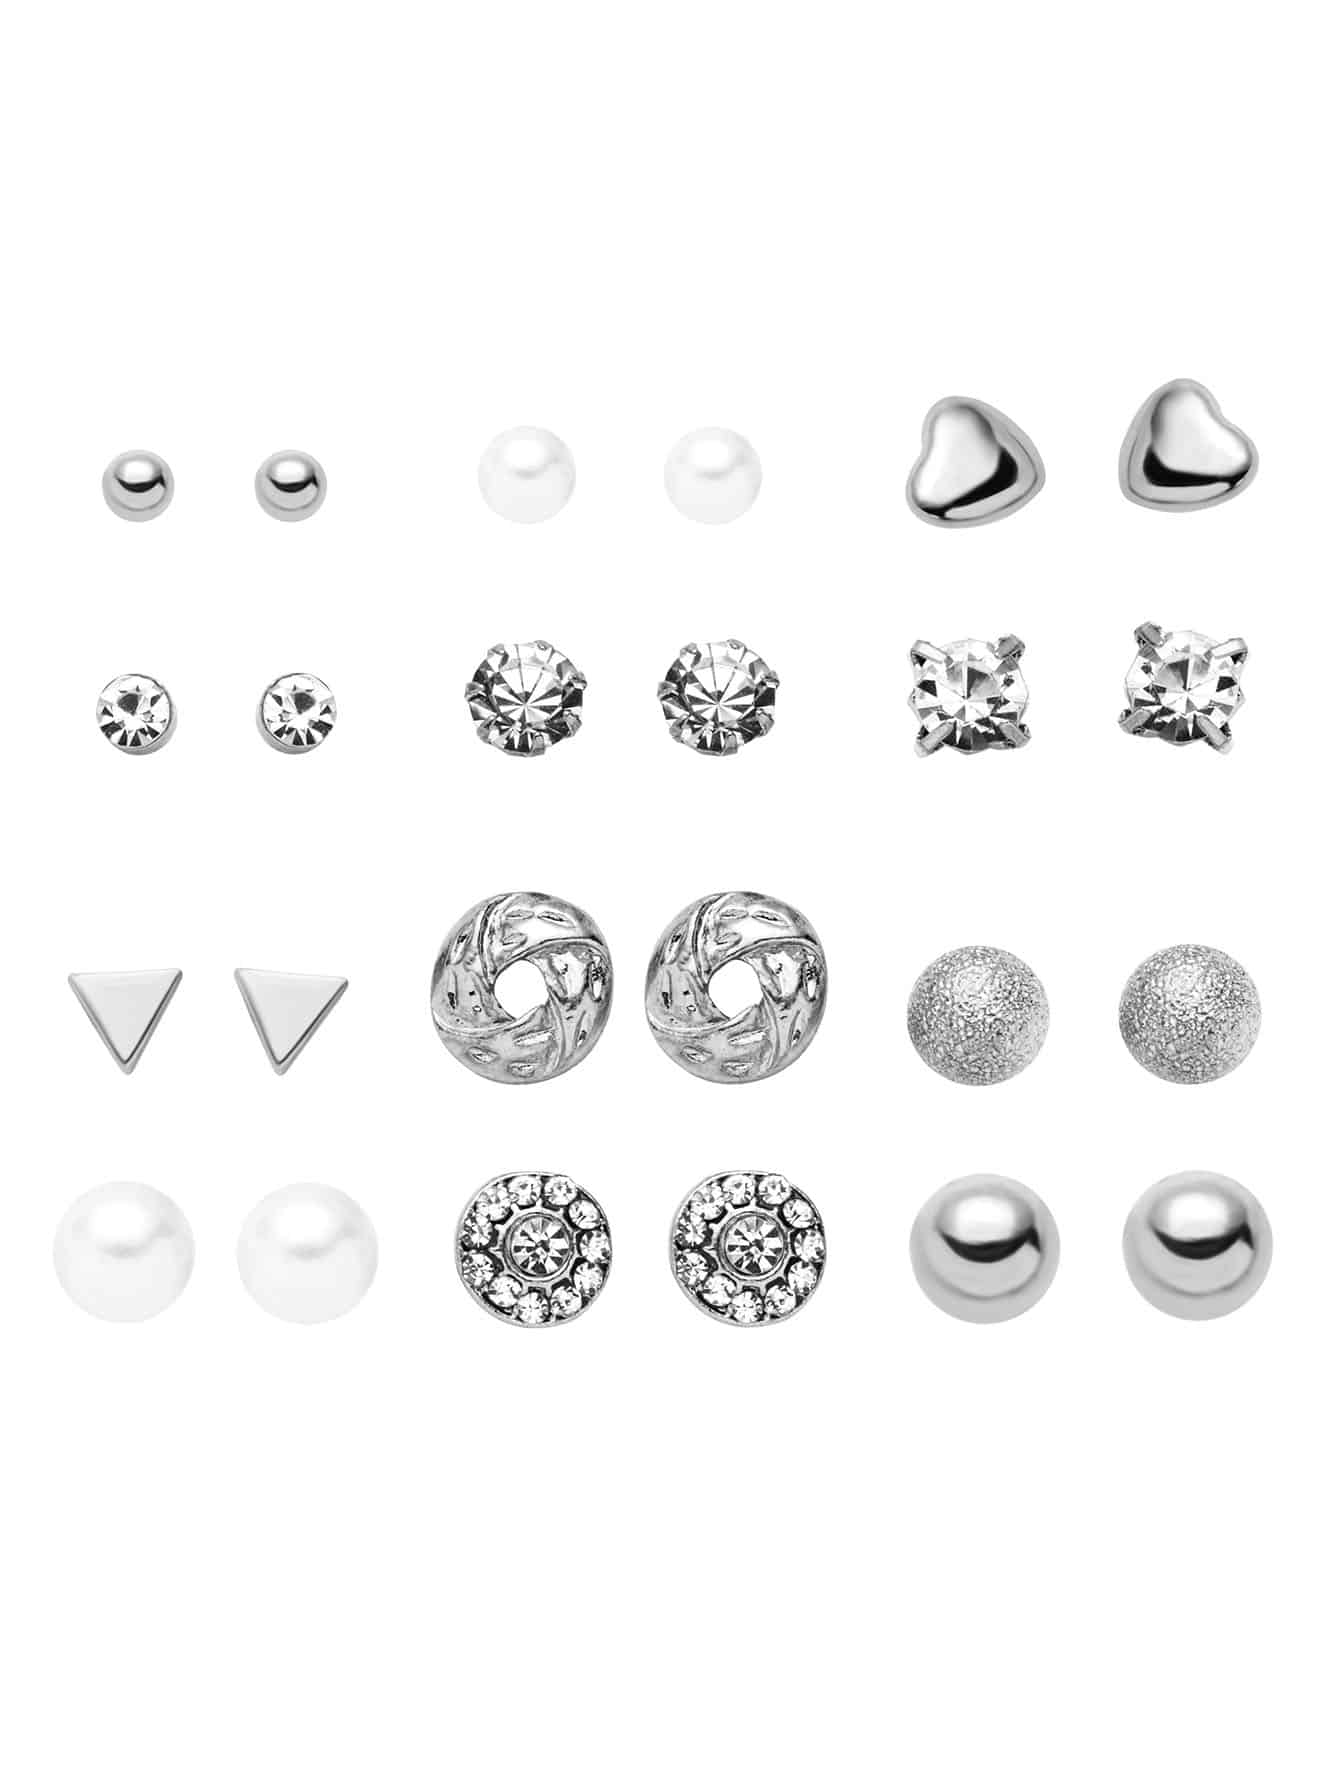 Silver Plated Rhinestone Geometric Stud Earrings Set silver plated bar dangle drop earrings